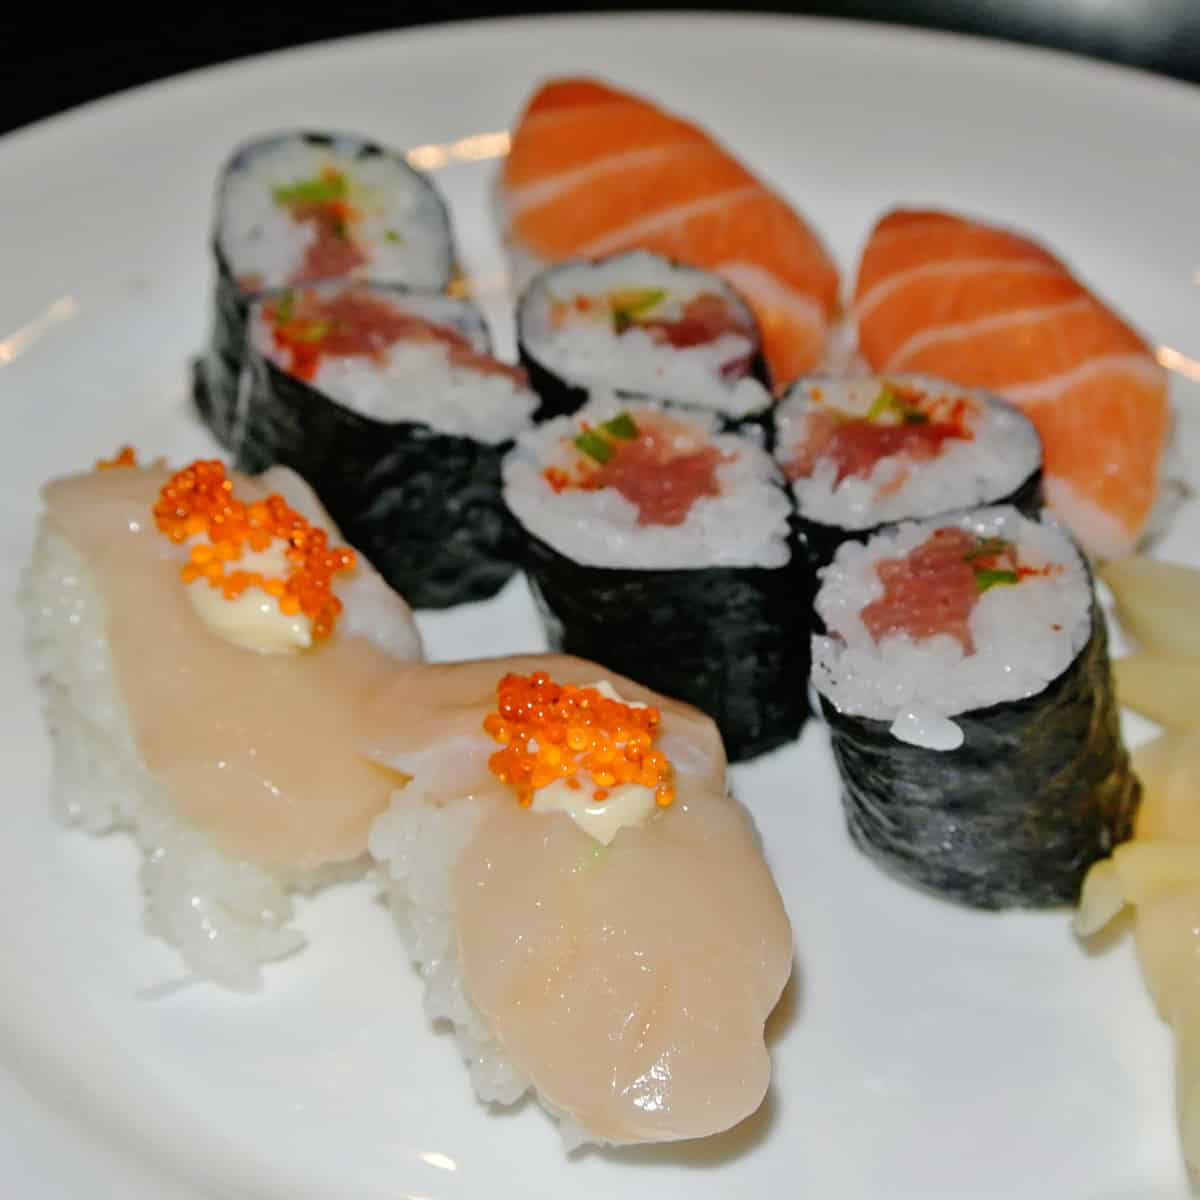 Unexpectedly Excellent Mom & Pop Sushi at Wayo in Lower Pac Heights